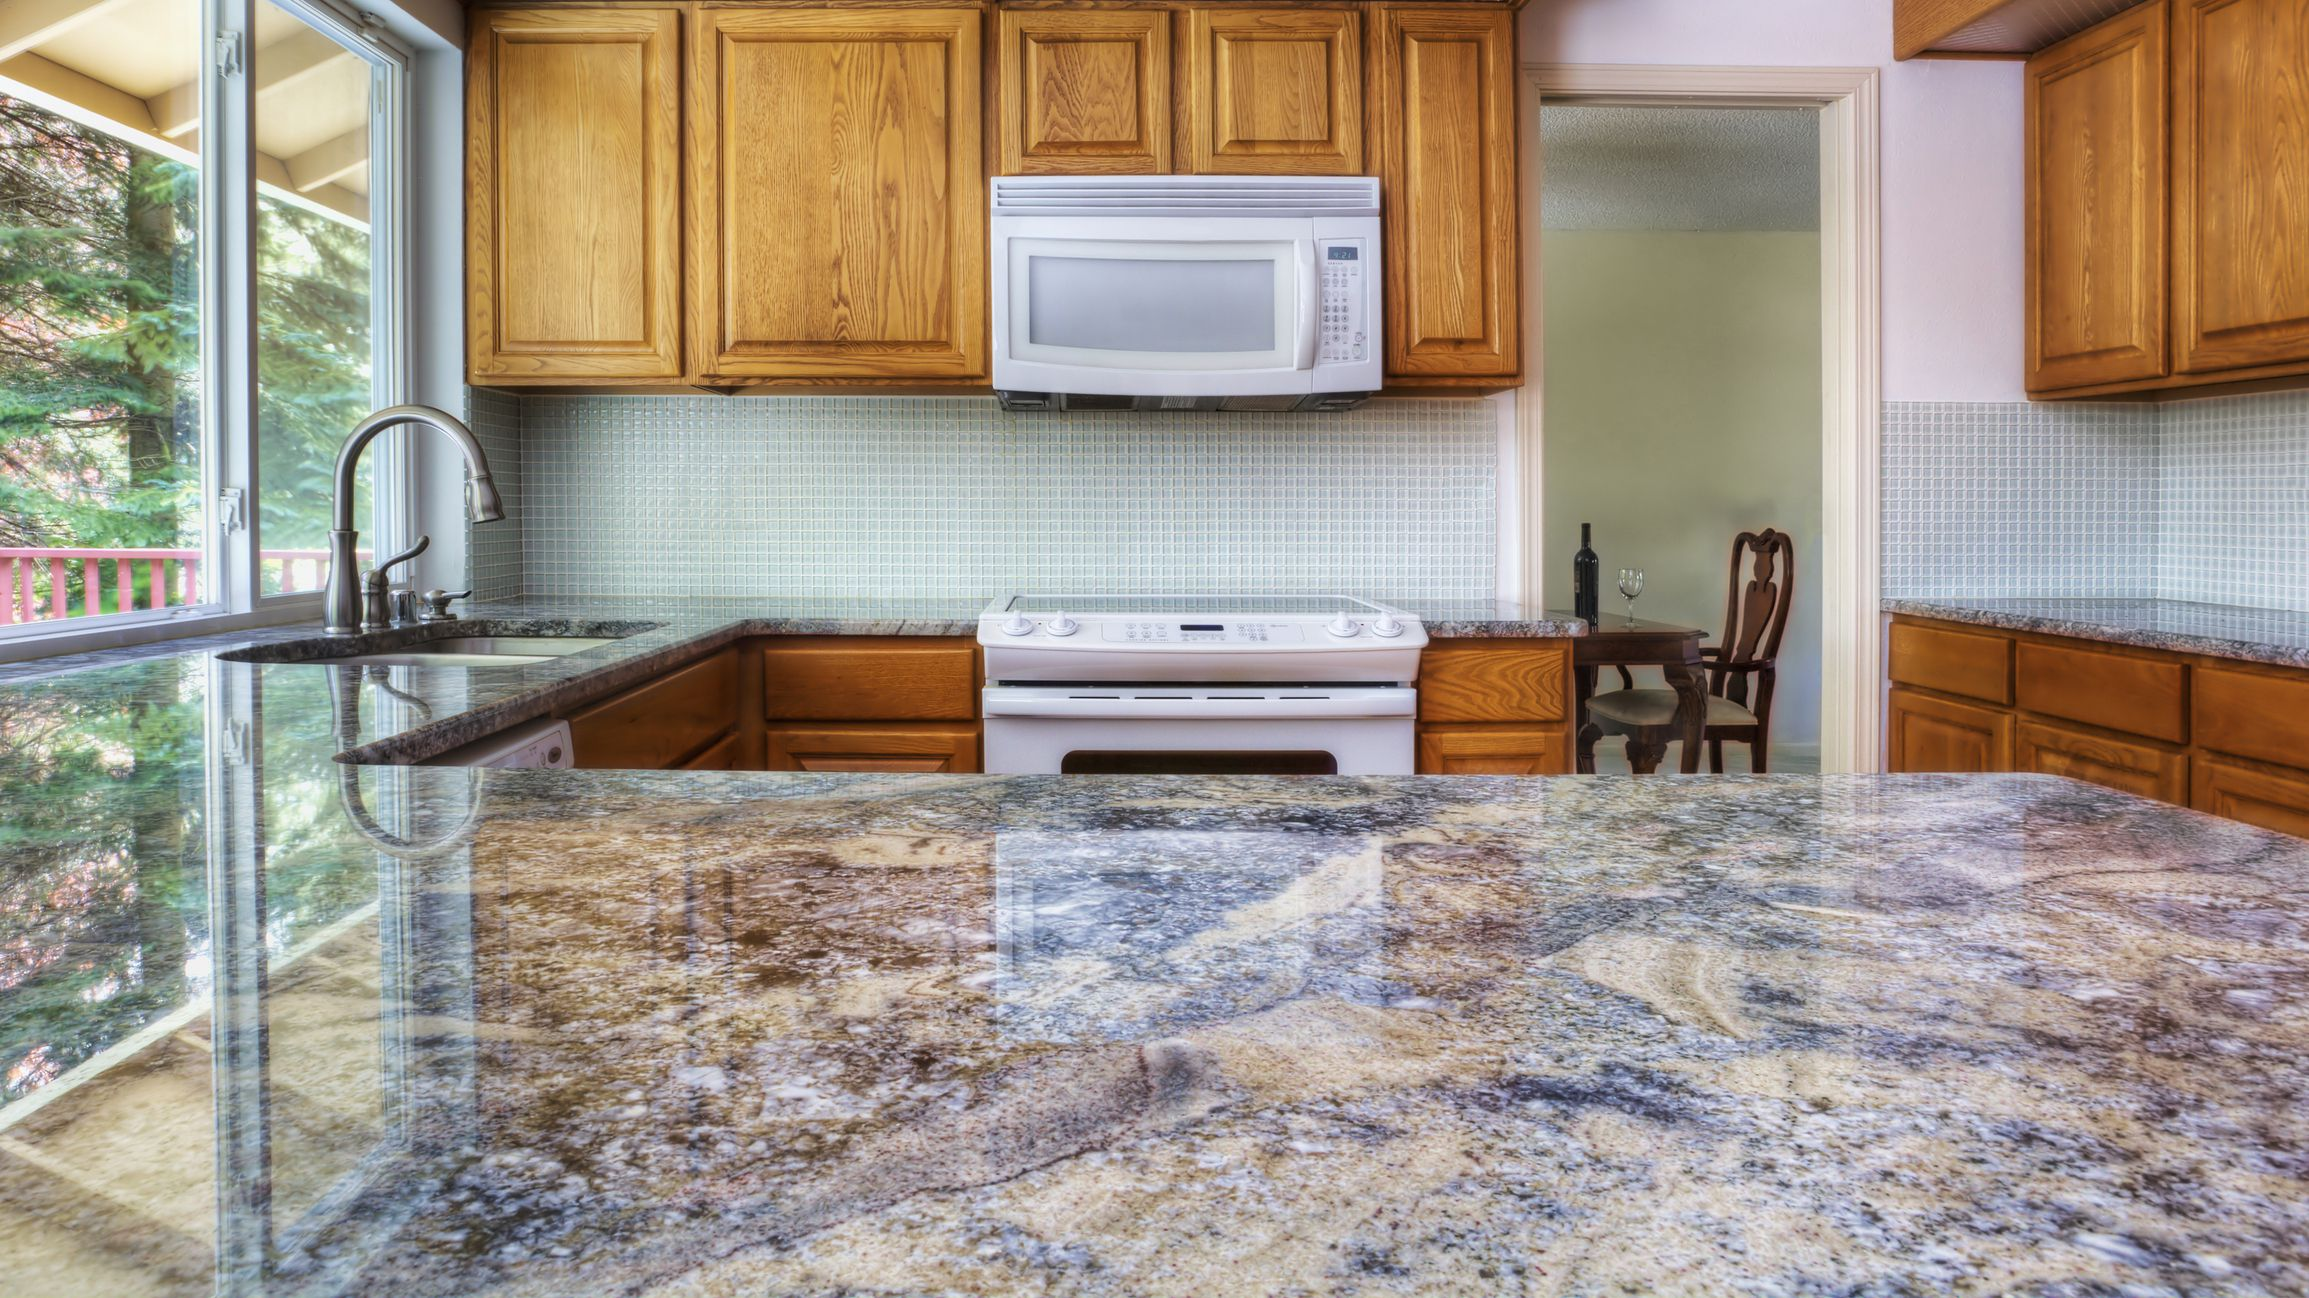 Advice for Choosing a Kitchen and Bathroom Countertop